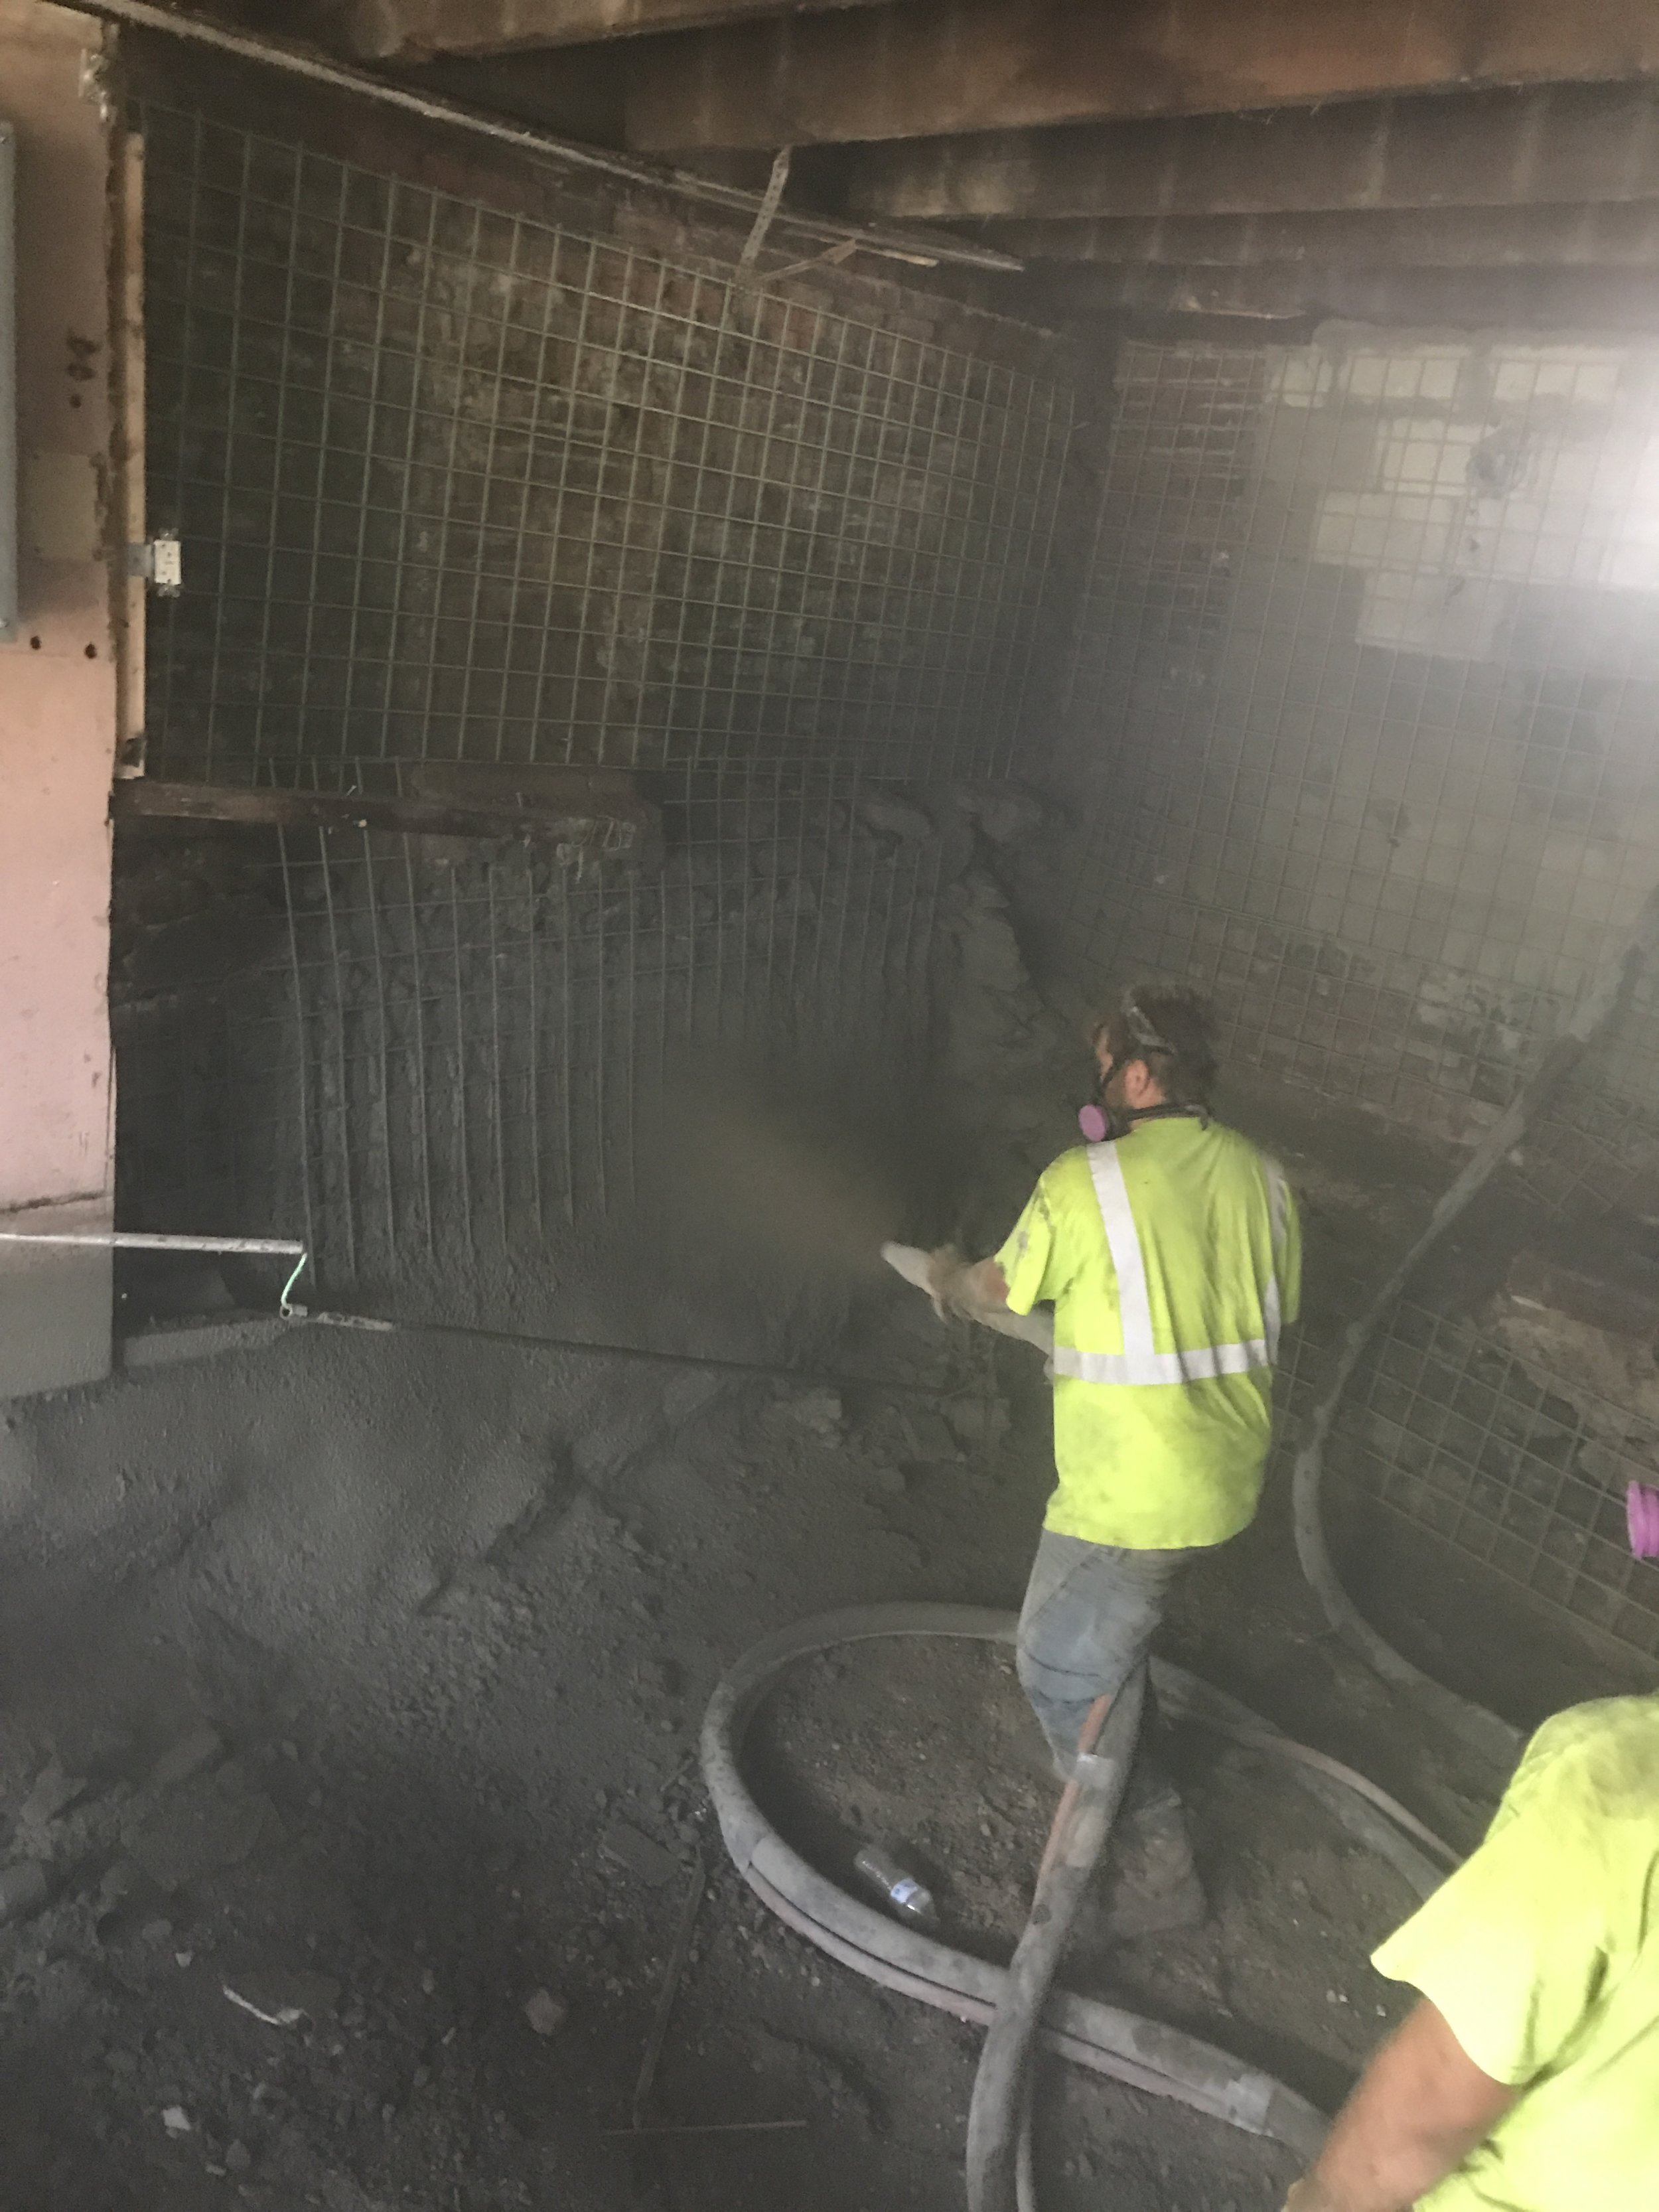 Our expert team in action spraying the shotcrete. Shotcrete is typically used in commercial applications such as Sea Walls and Subway stations due to its strength and longevity.